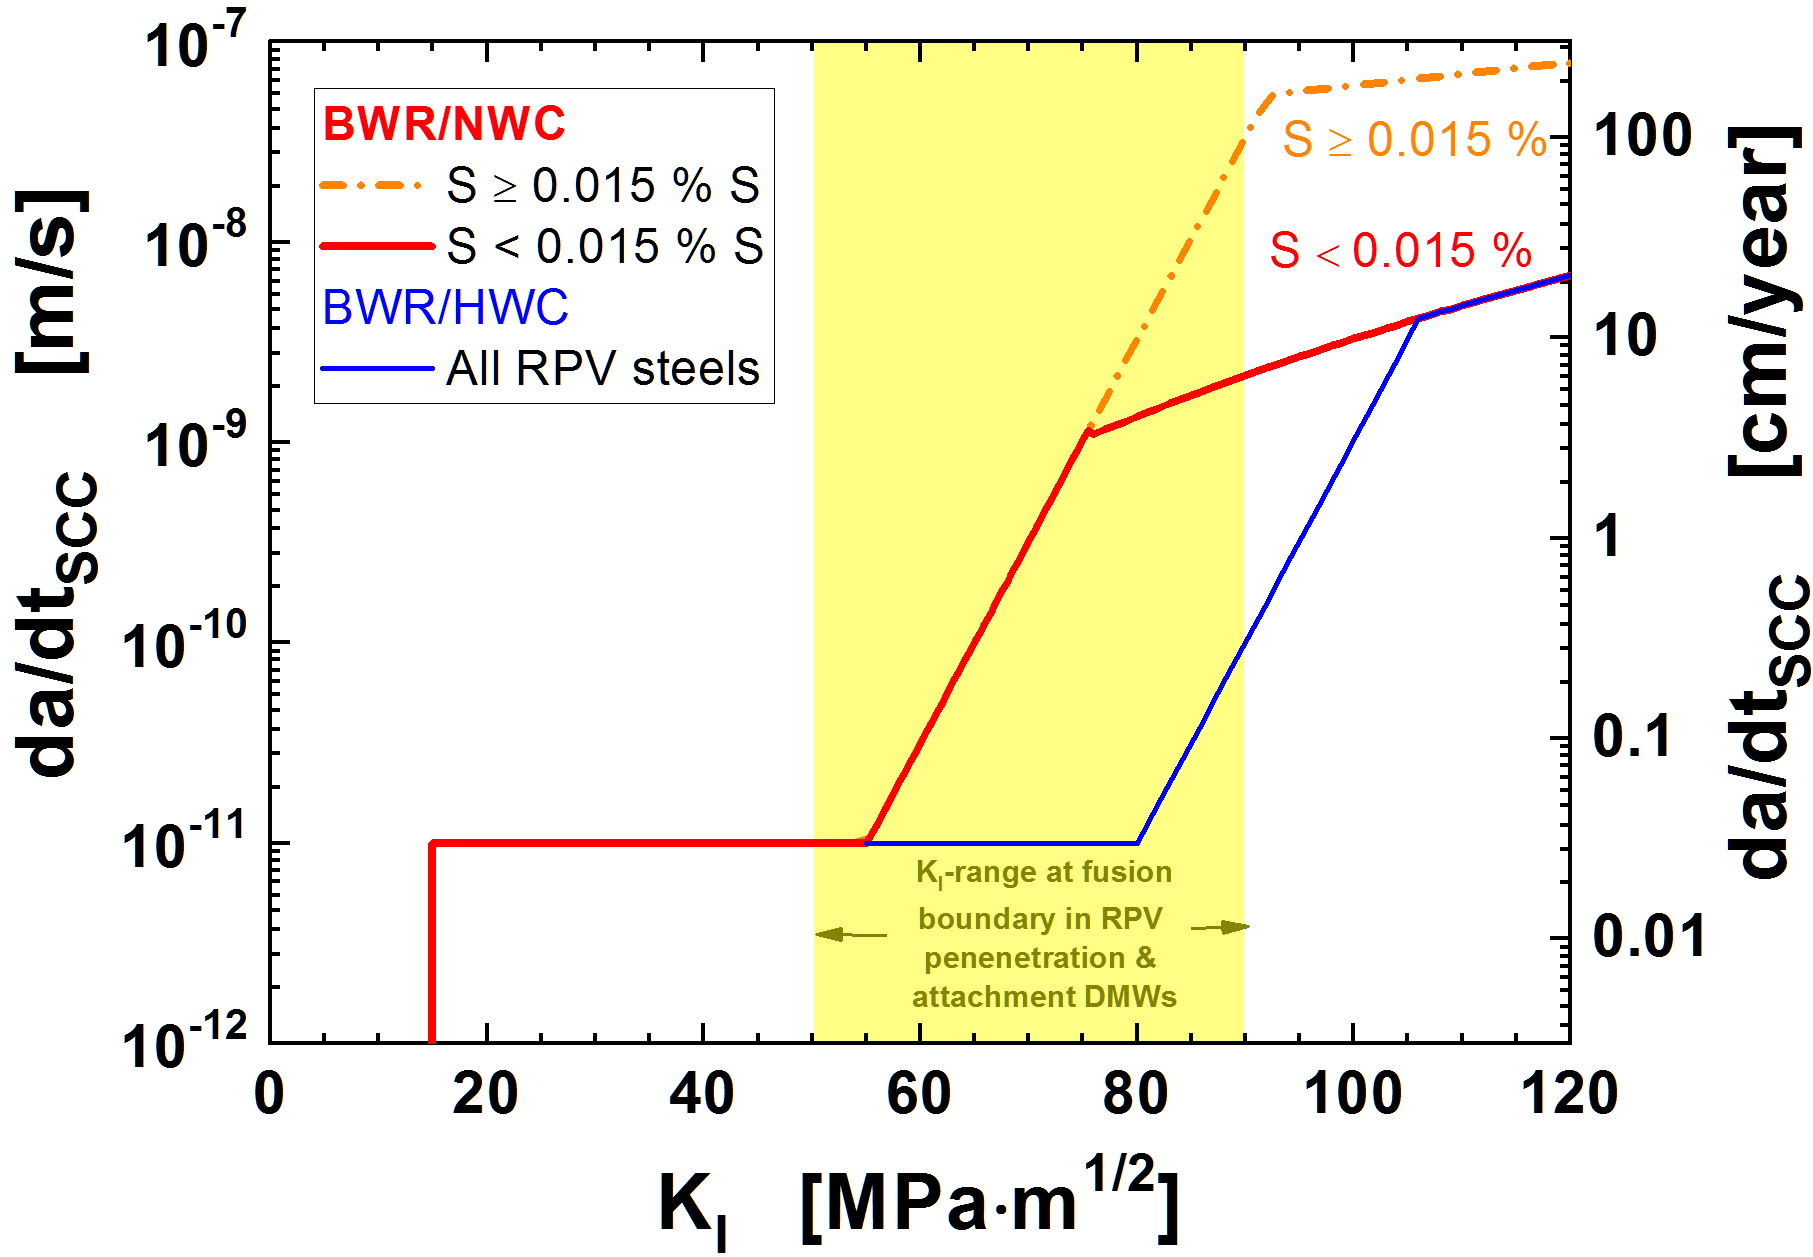 Fig. 4: ASME BPV Code Case N-896 SCC disposition curves for RPV steels in BWR/NWC and HWC environment [5]. (© ASME)